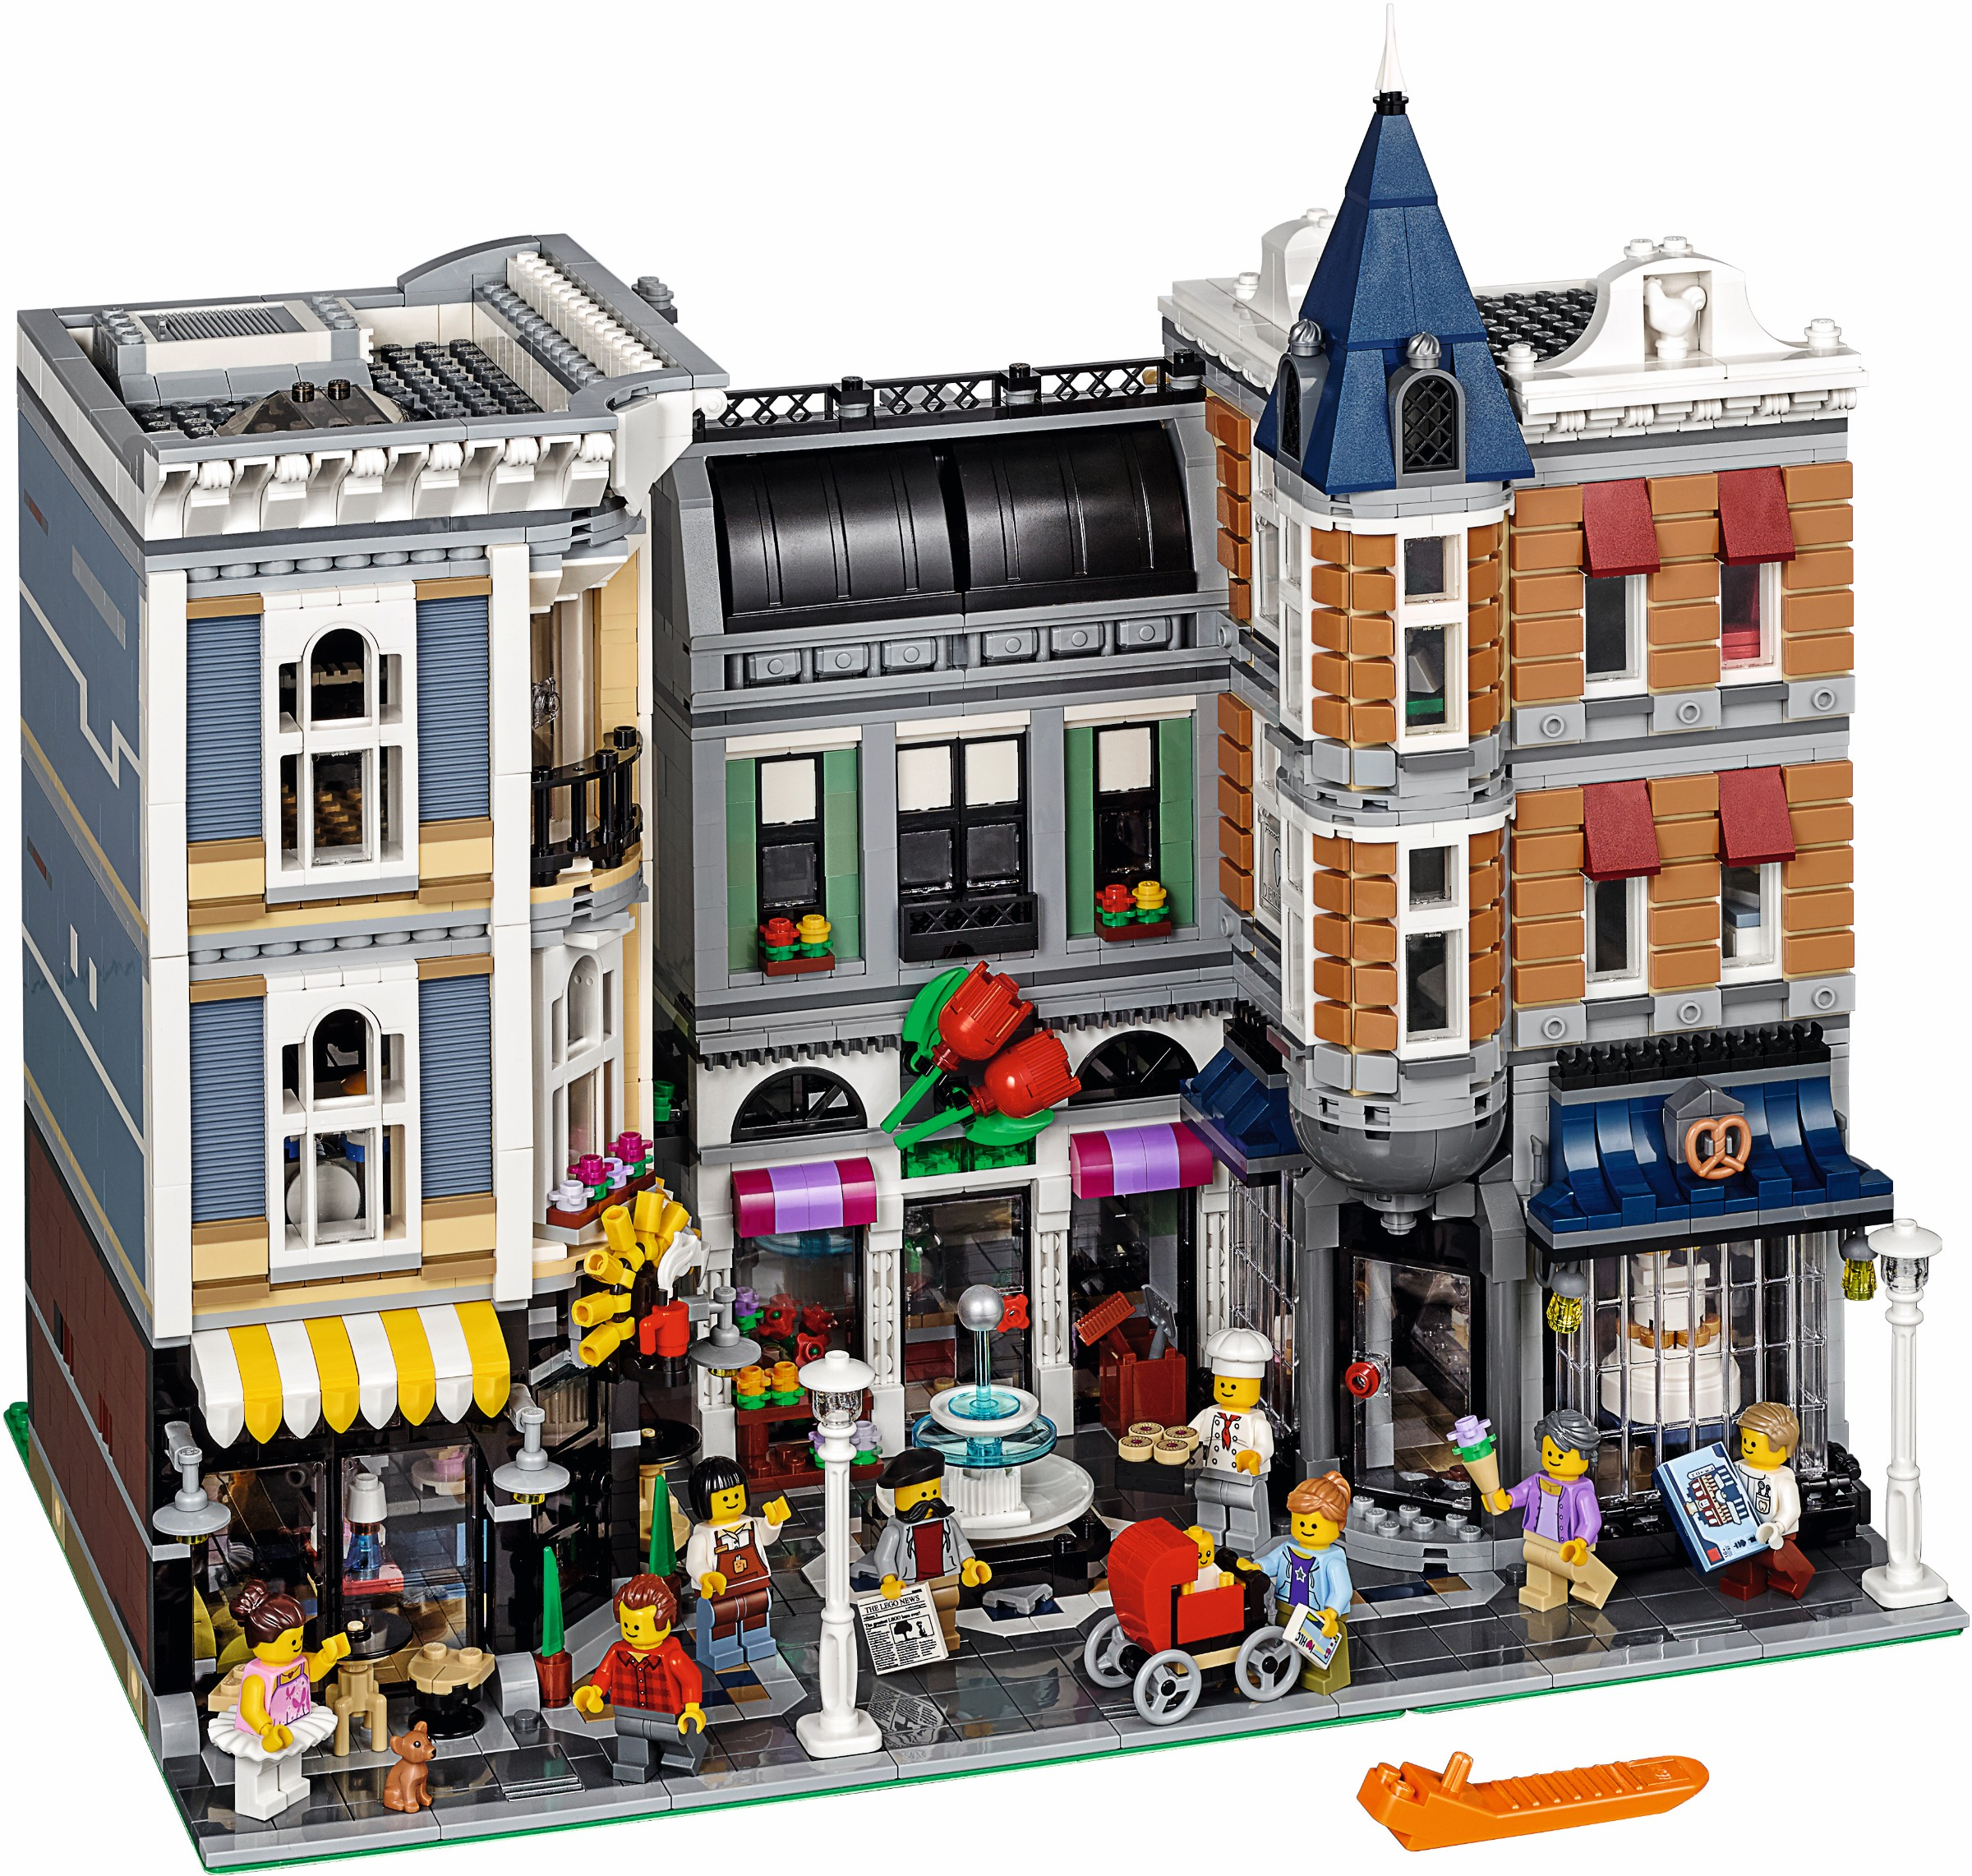 2017   Brickset  LEGO set guide and database Assembly Square